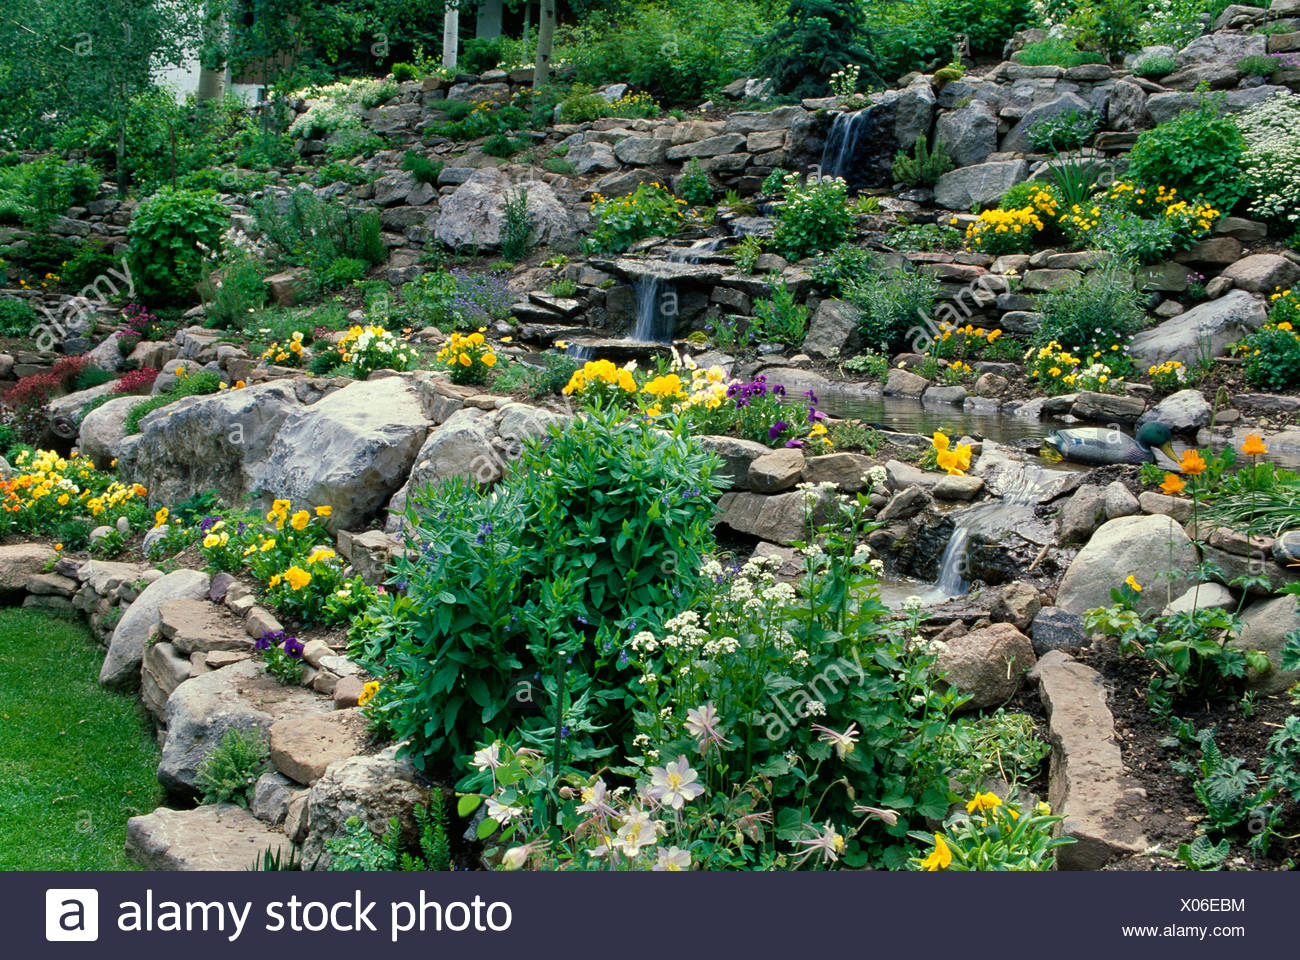 Rock Garden With Terraces Of Pansies Columbines And Water Feature